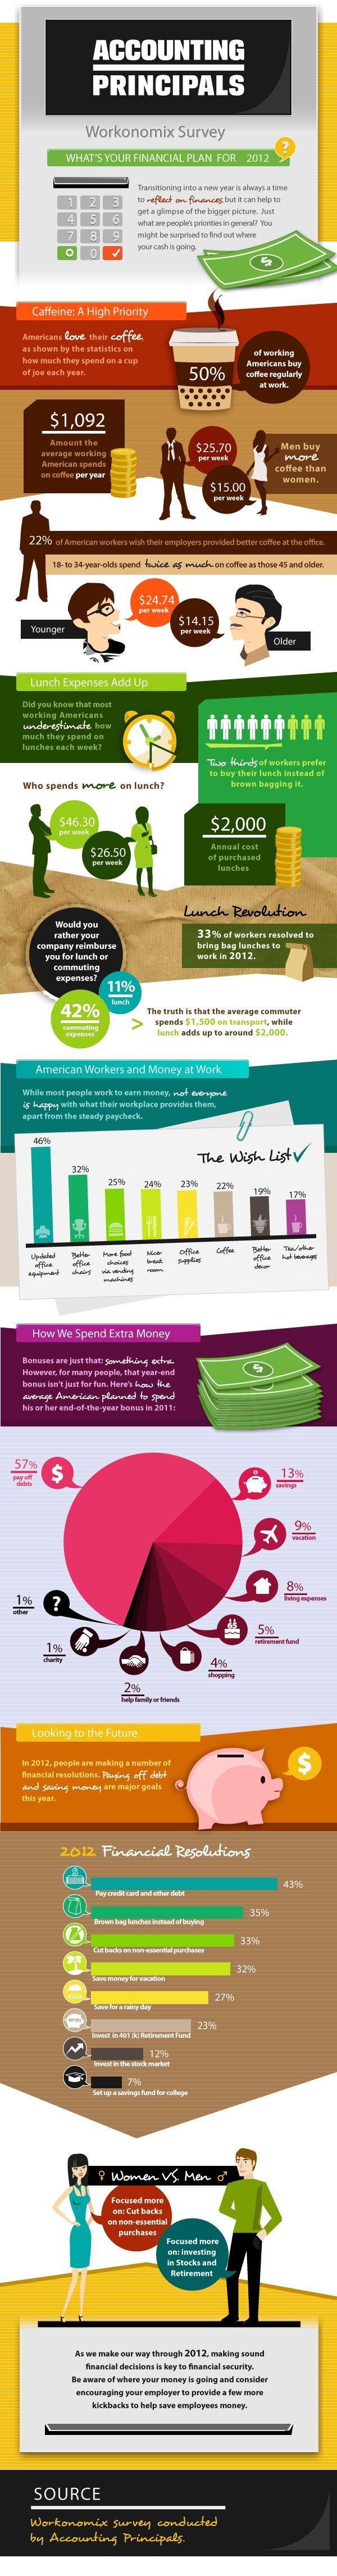 This Accounting Principals infographic shows that buying